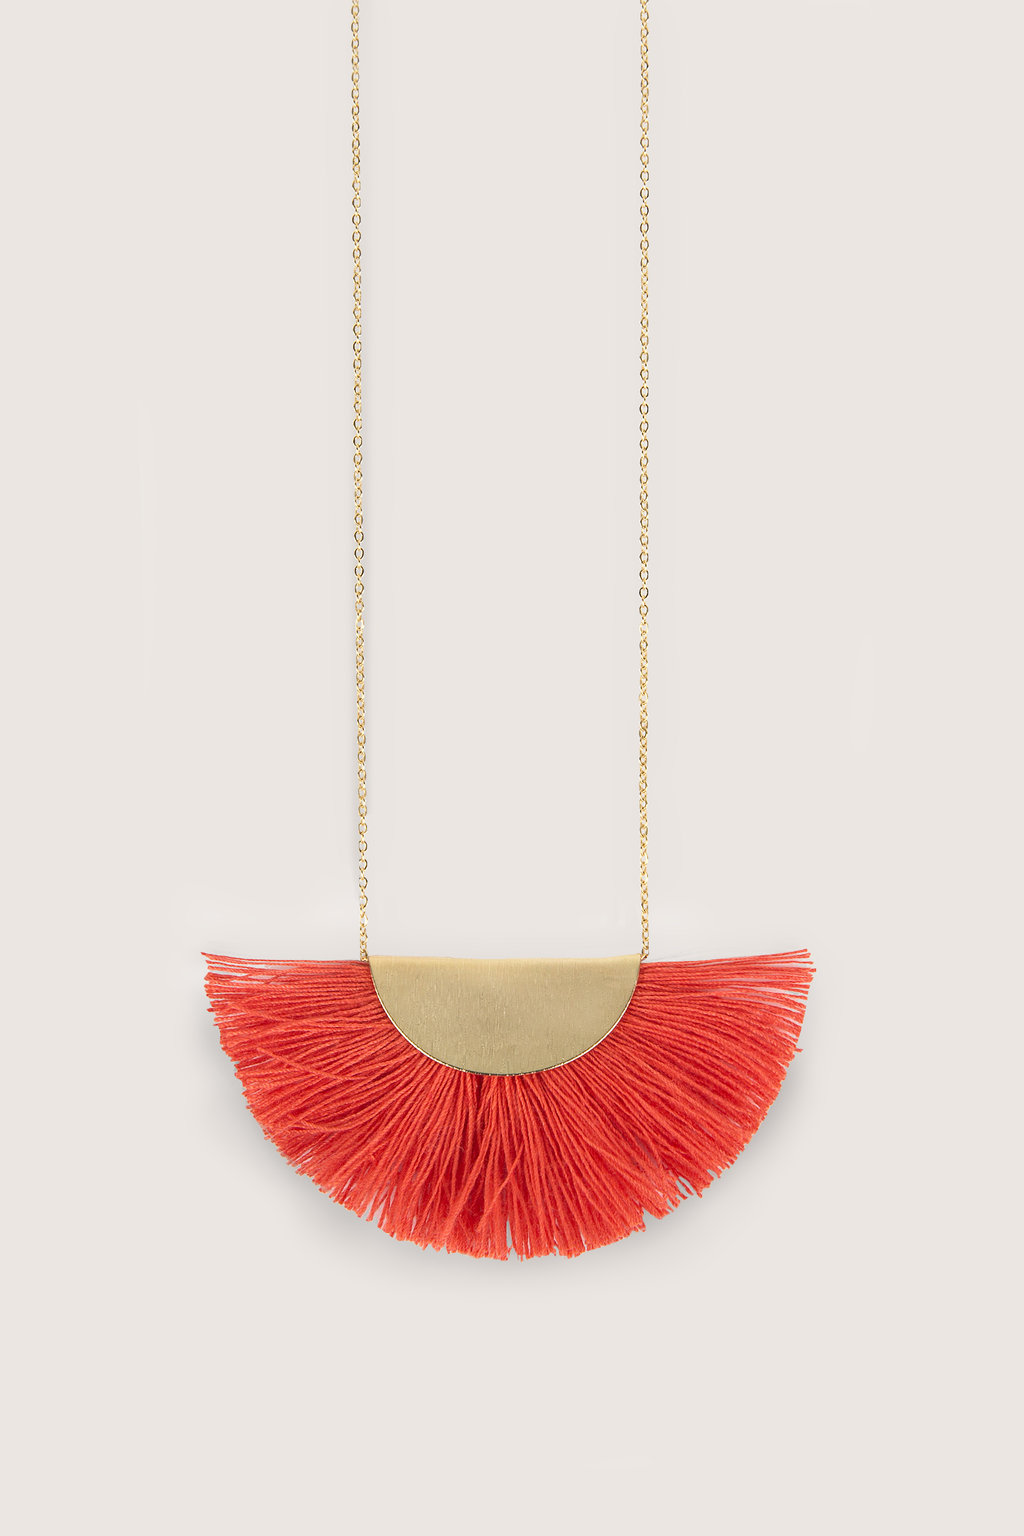 Necklace H013 Red 1